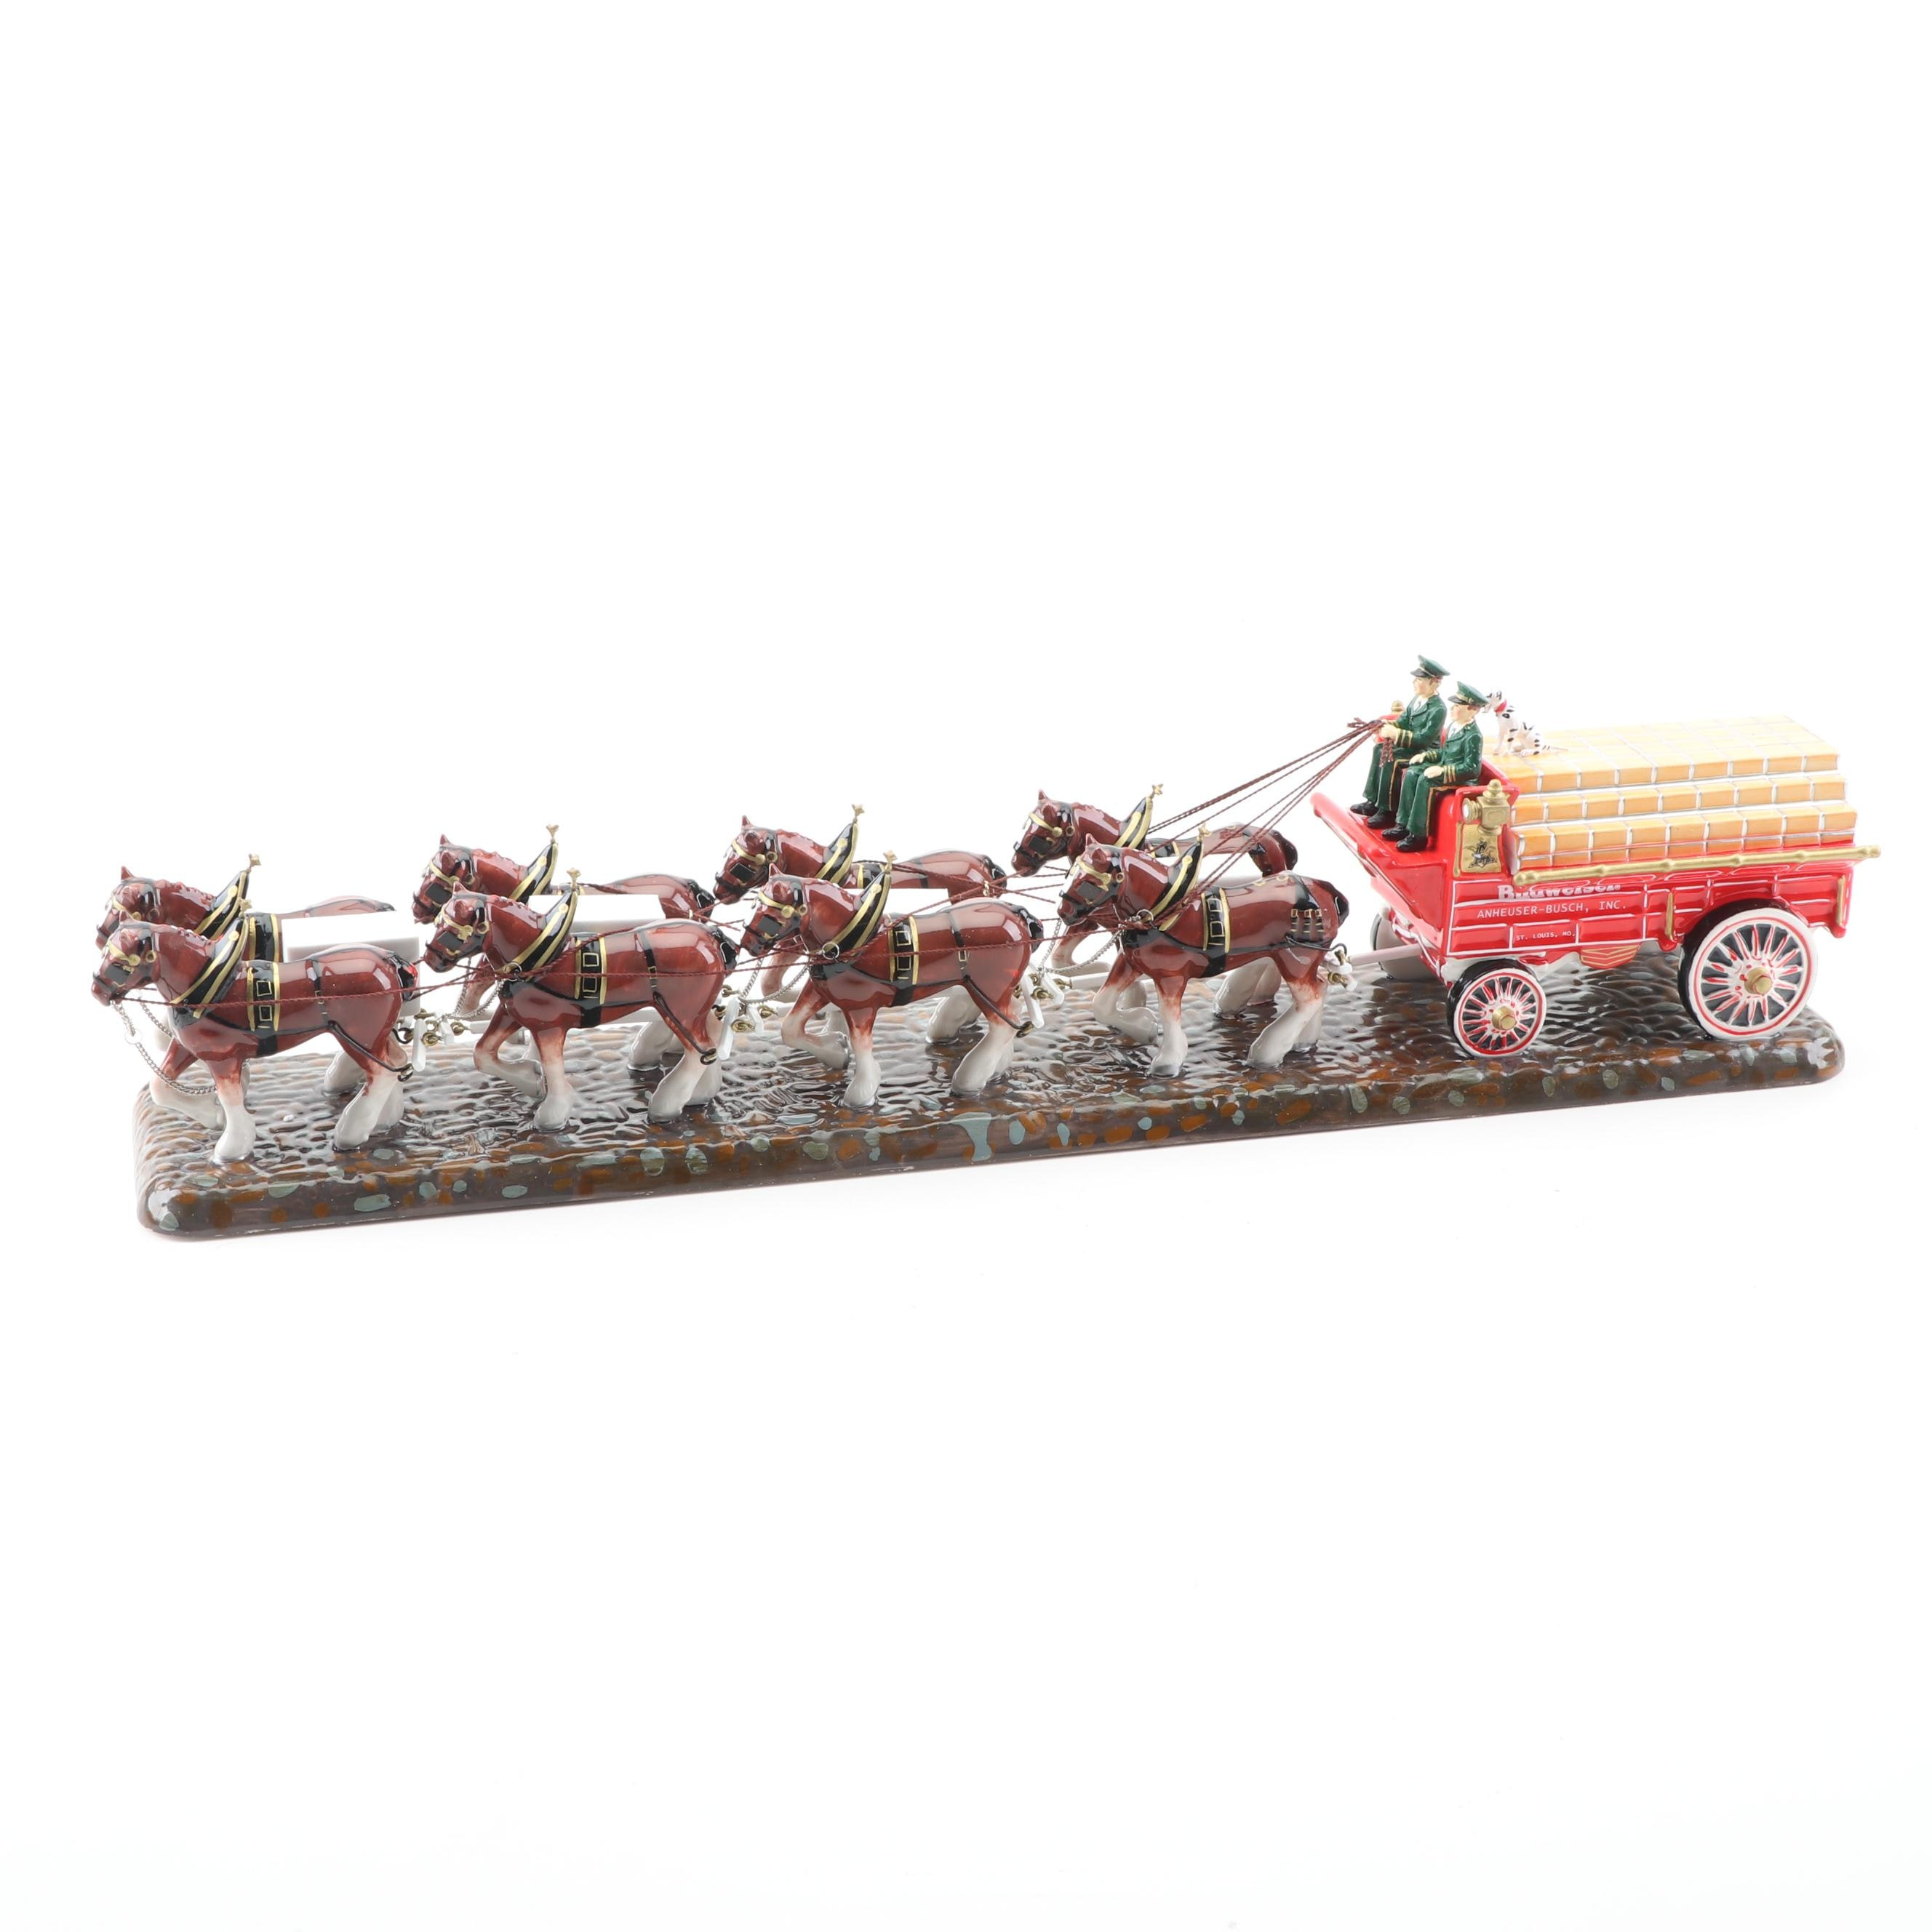 "Department 56 The Original Snow Village ""Budweiser Clydesdales"" Group"